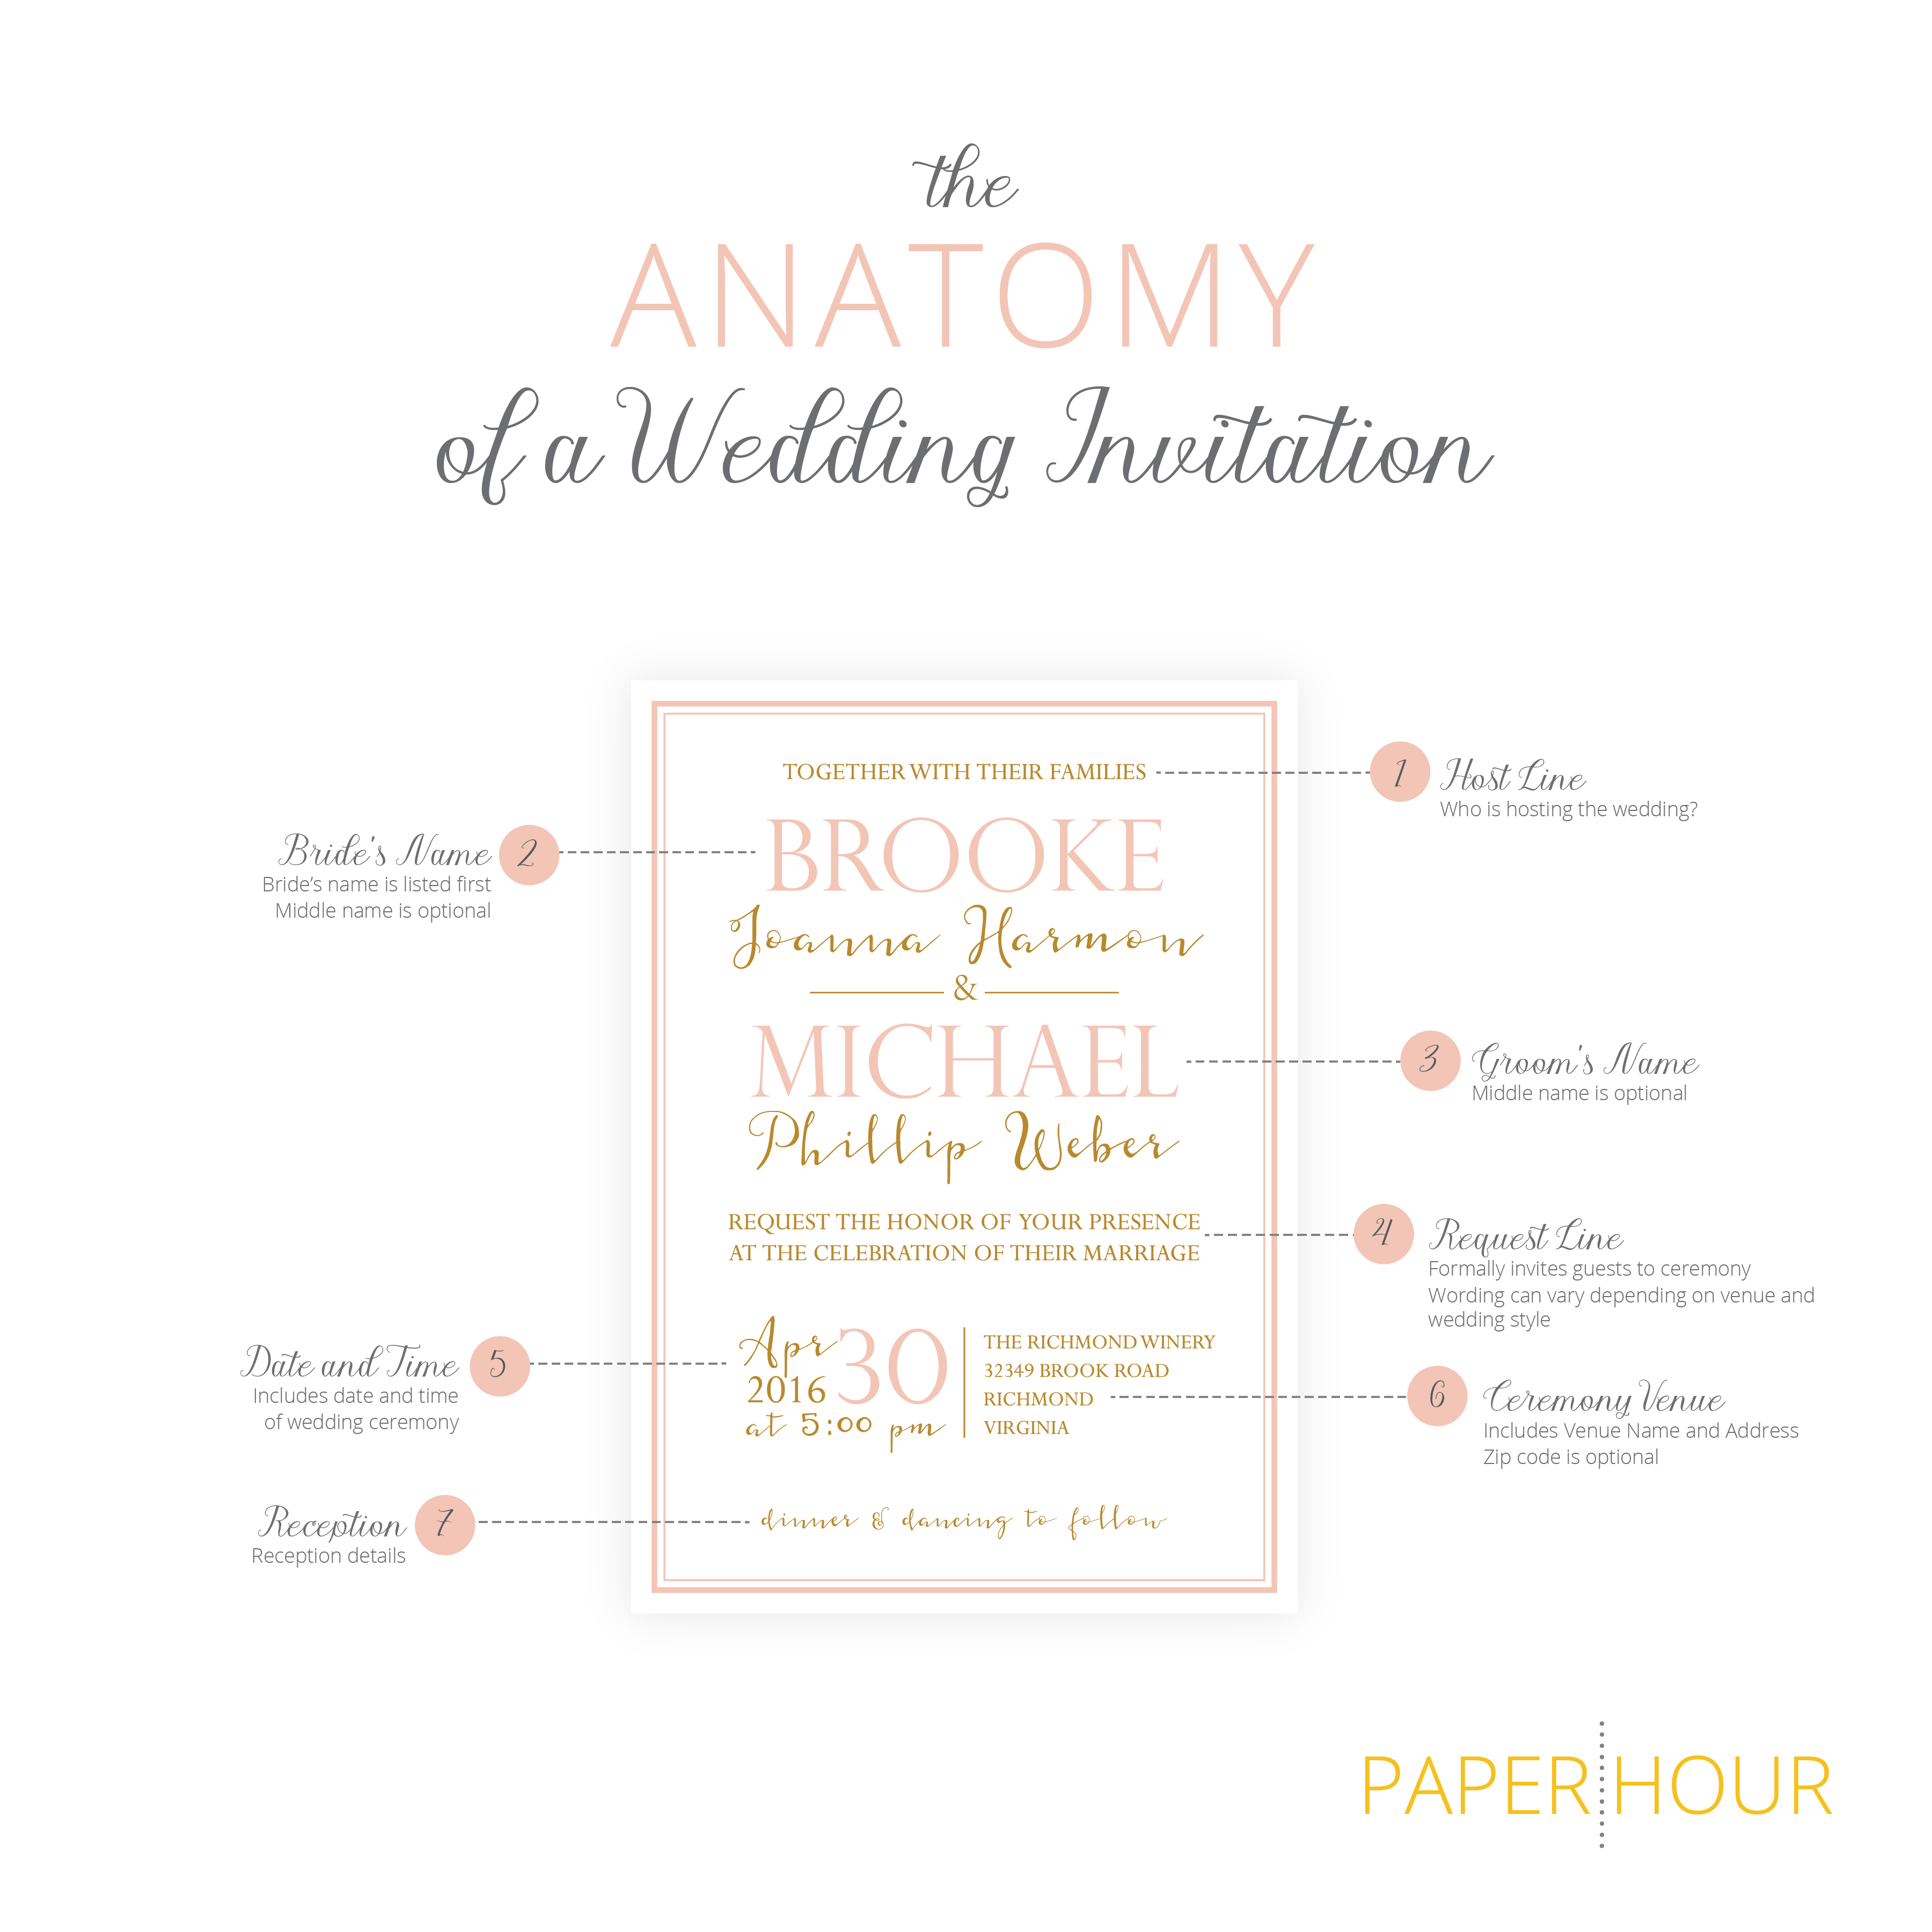 The Anatomy of a Wedding Invitation – paperhourcrafts